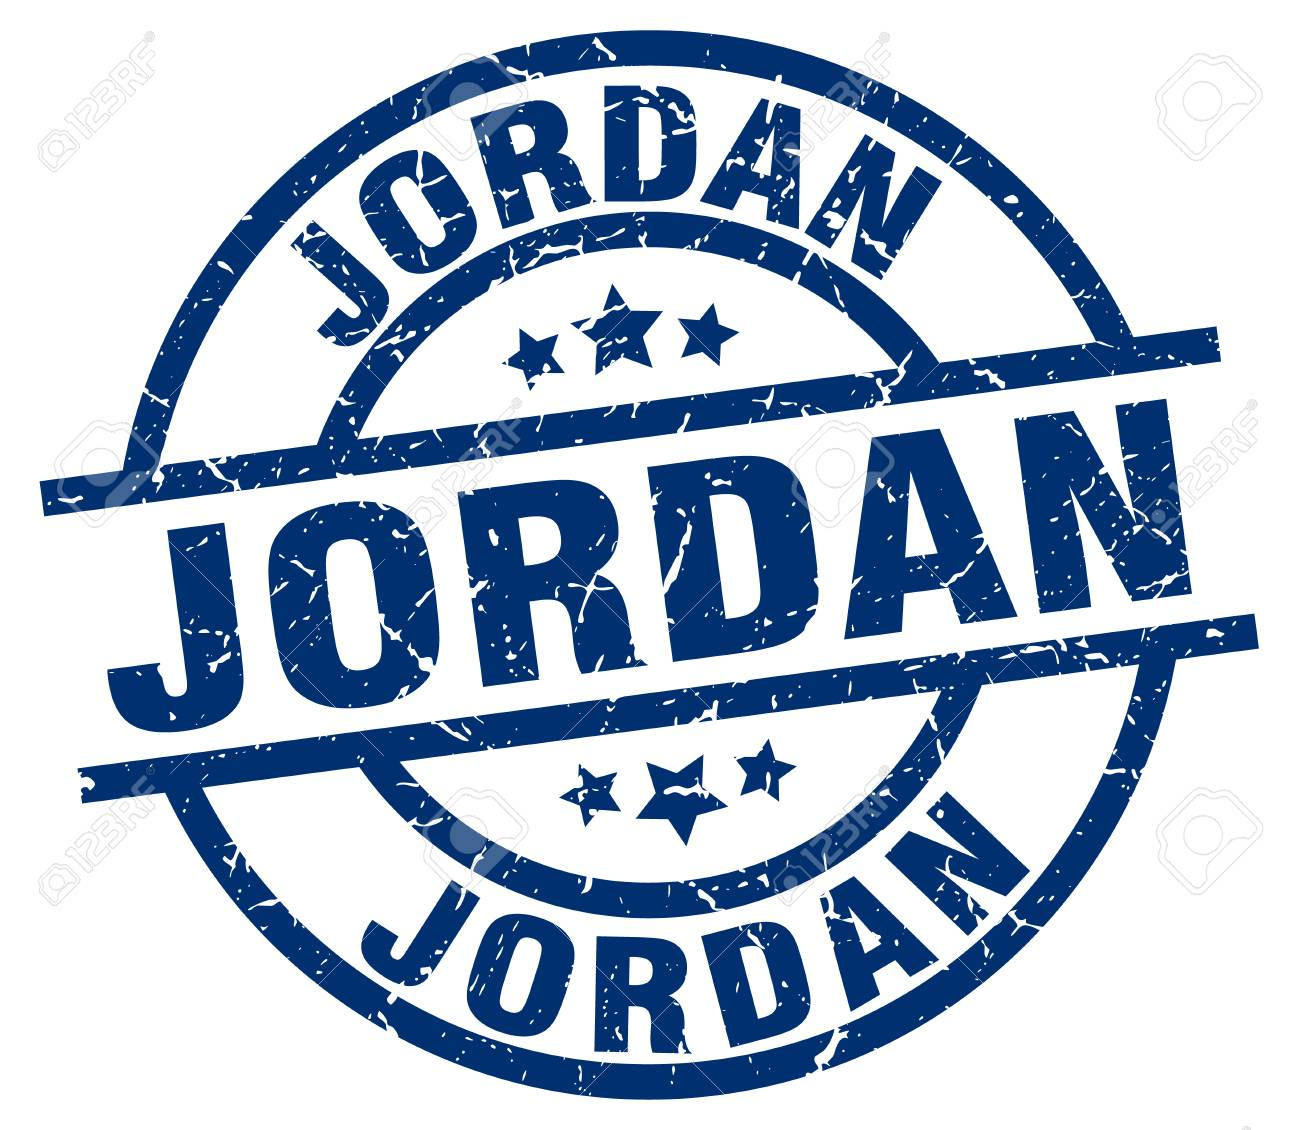 Jordan Blue Round Grunge Stamp Royalty Free Cliparts Vectors And